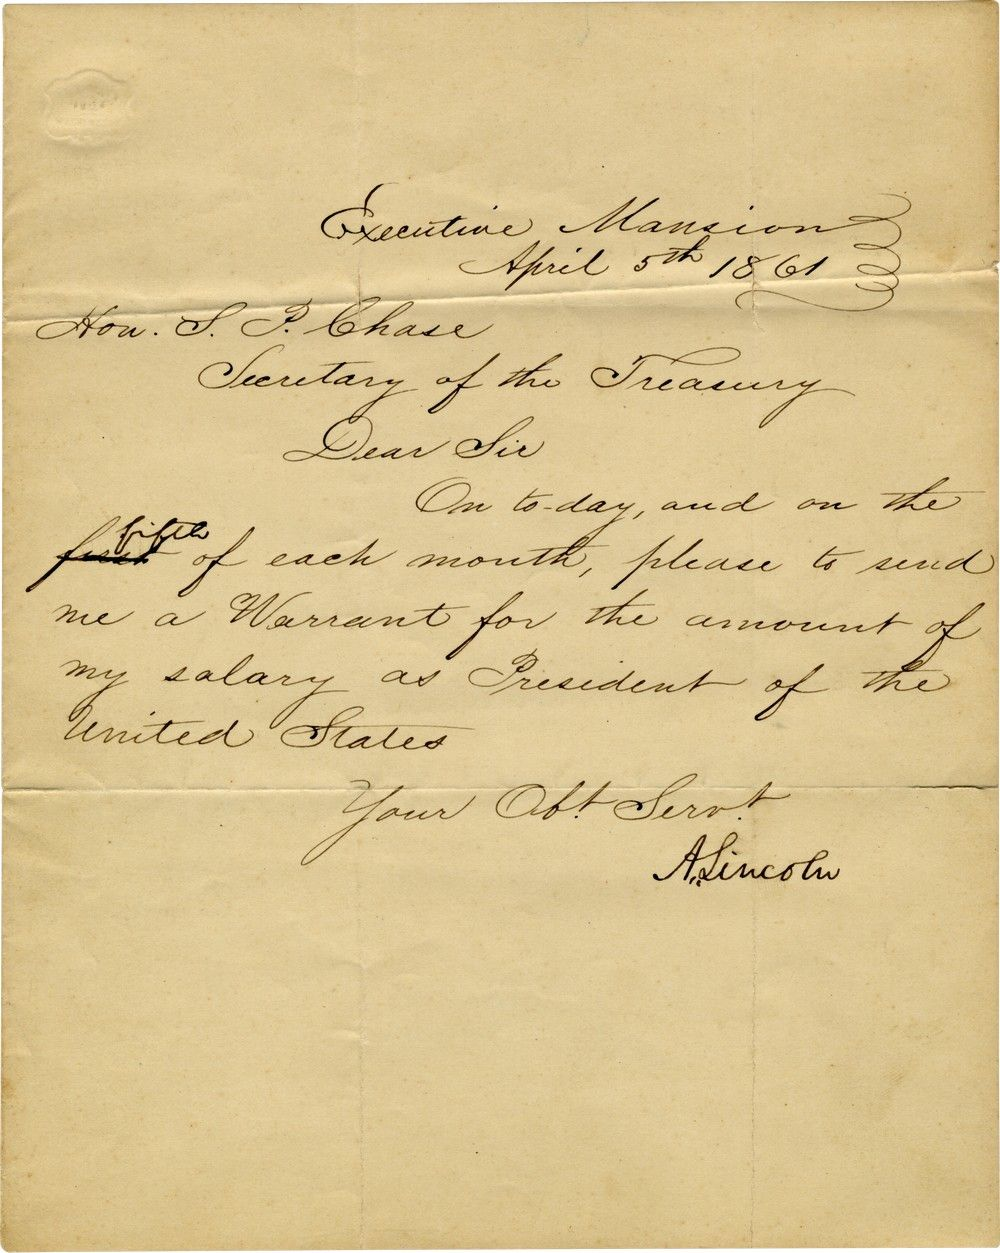 Abraham Lincoln Corrects His Presidential Salary Payment, Which Credits Him With Days Not Worked